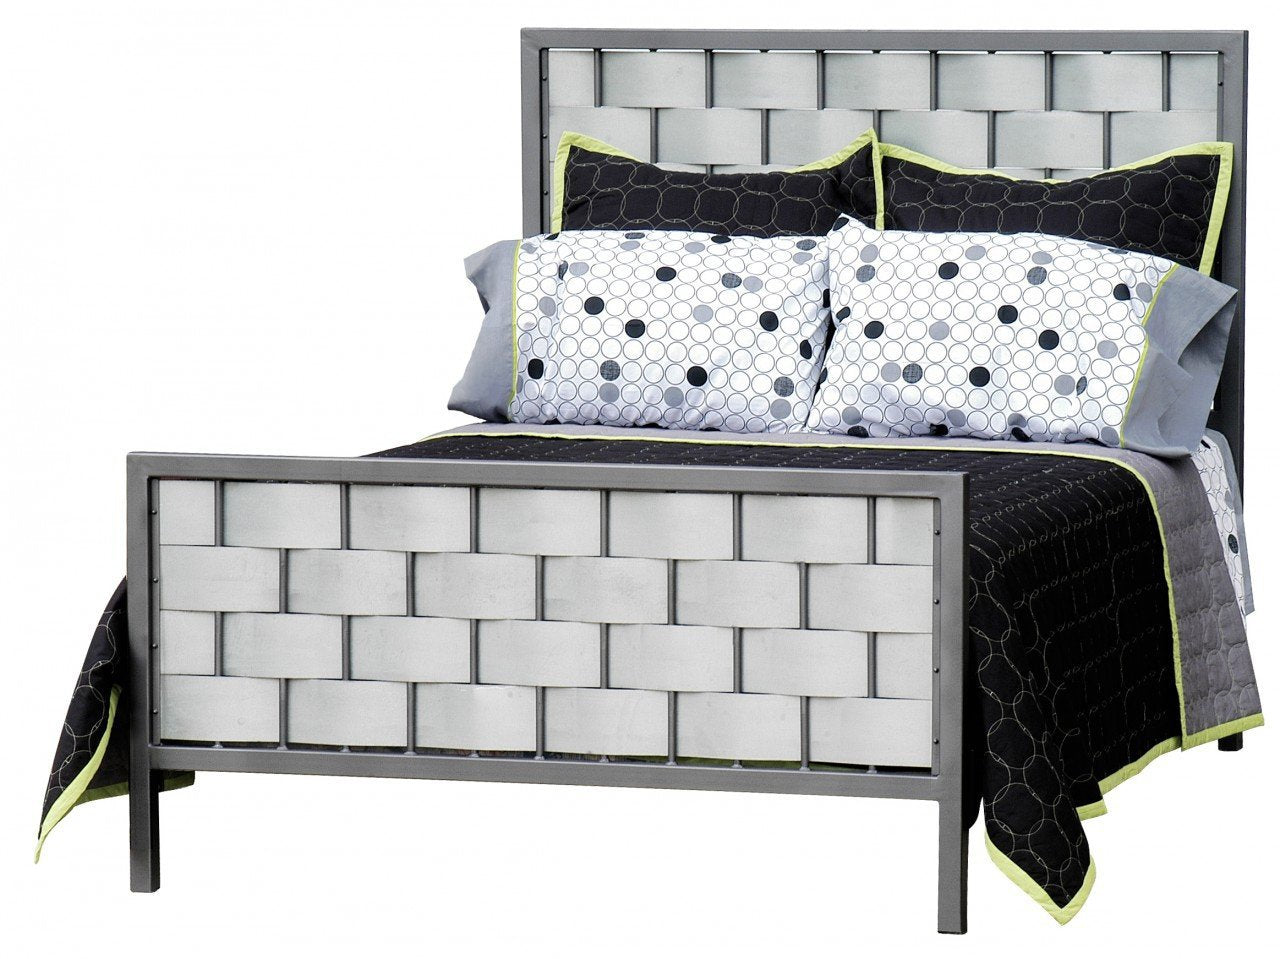 Bed Queen Iron Bed Galvanized Rushton Photo